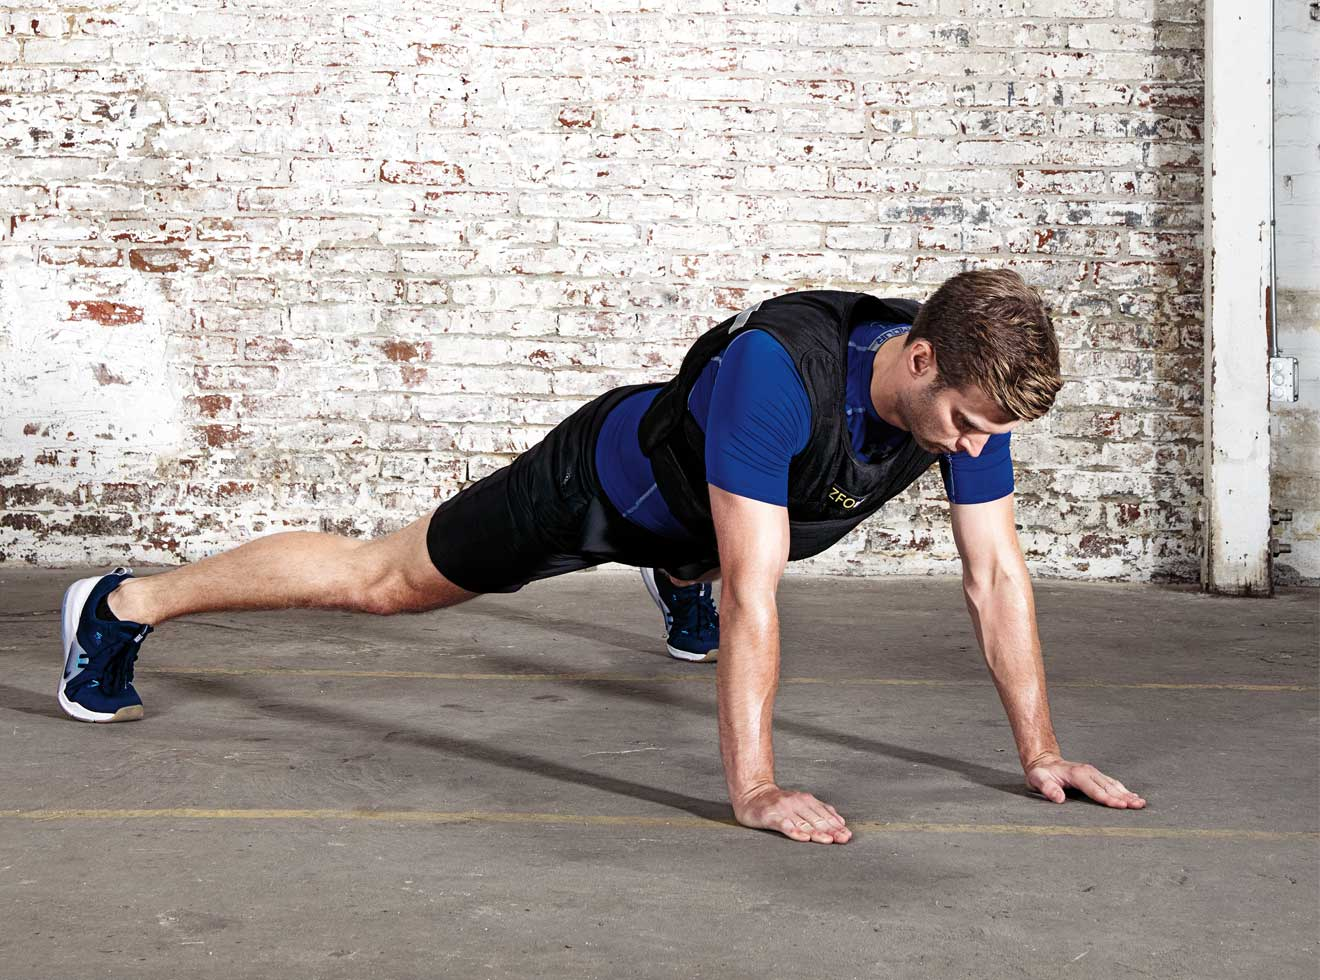 The Burpee Workout Thatll Shred Fat Fast The Burpee Workout Thatll Shred Fat Fast new pics